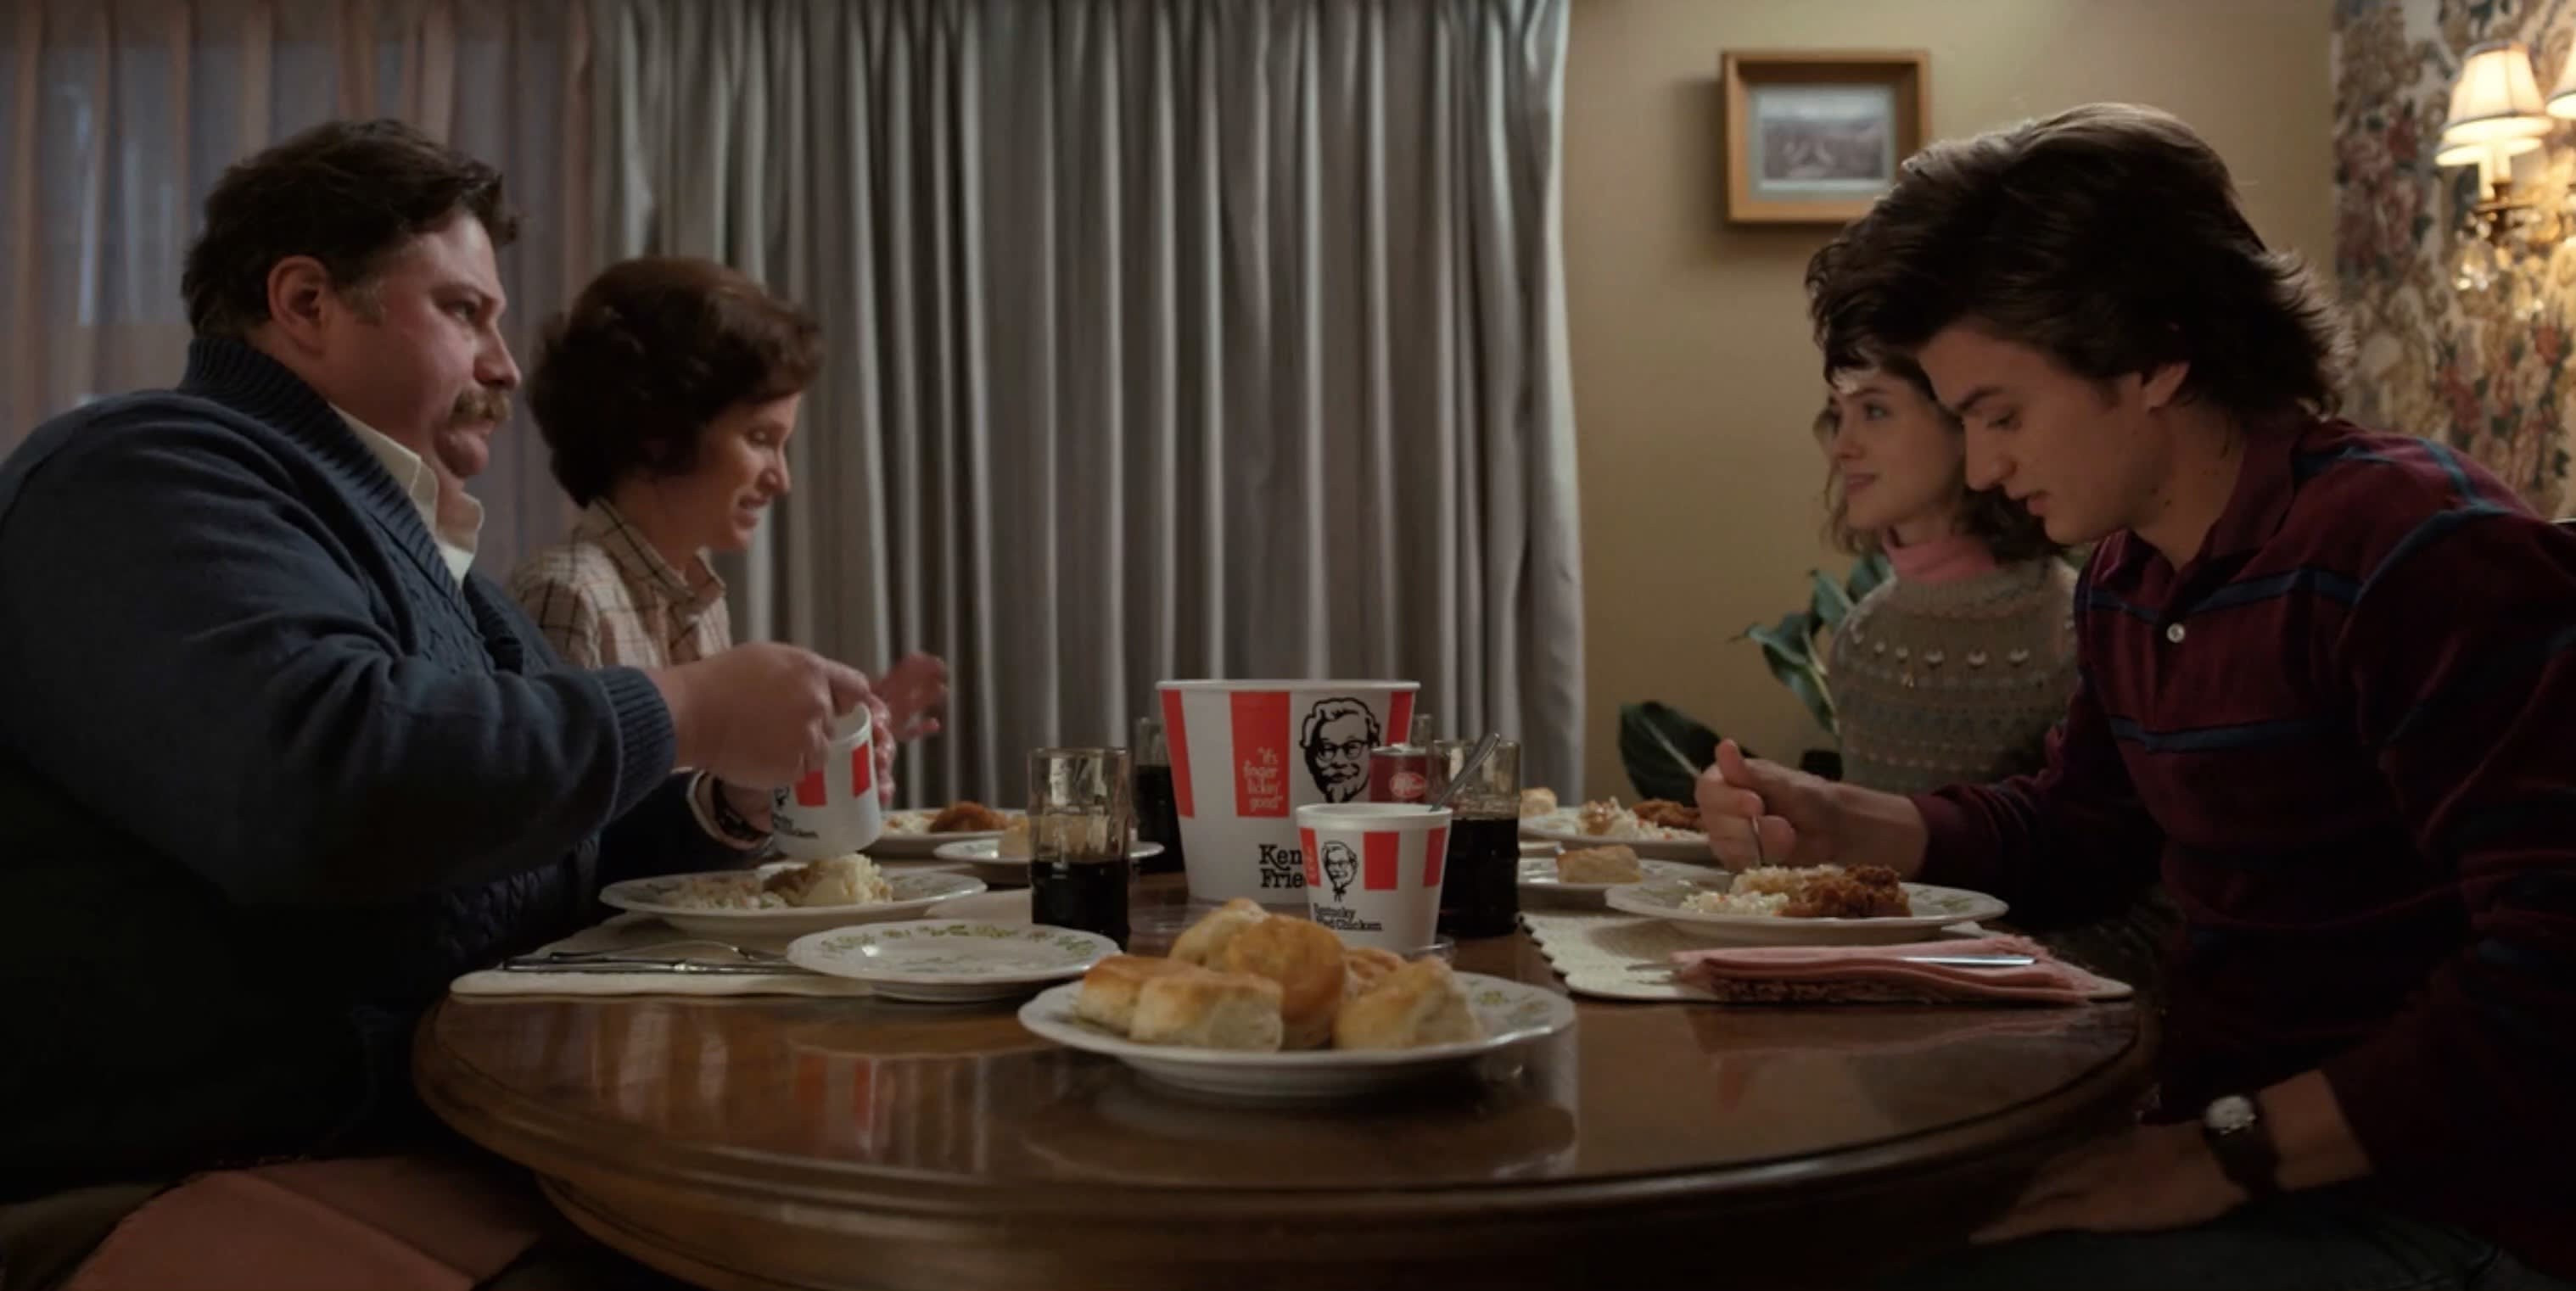 Kfc In Stranger Things Not A Coincidence Netflix Product Placement